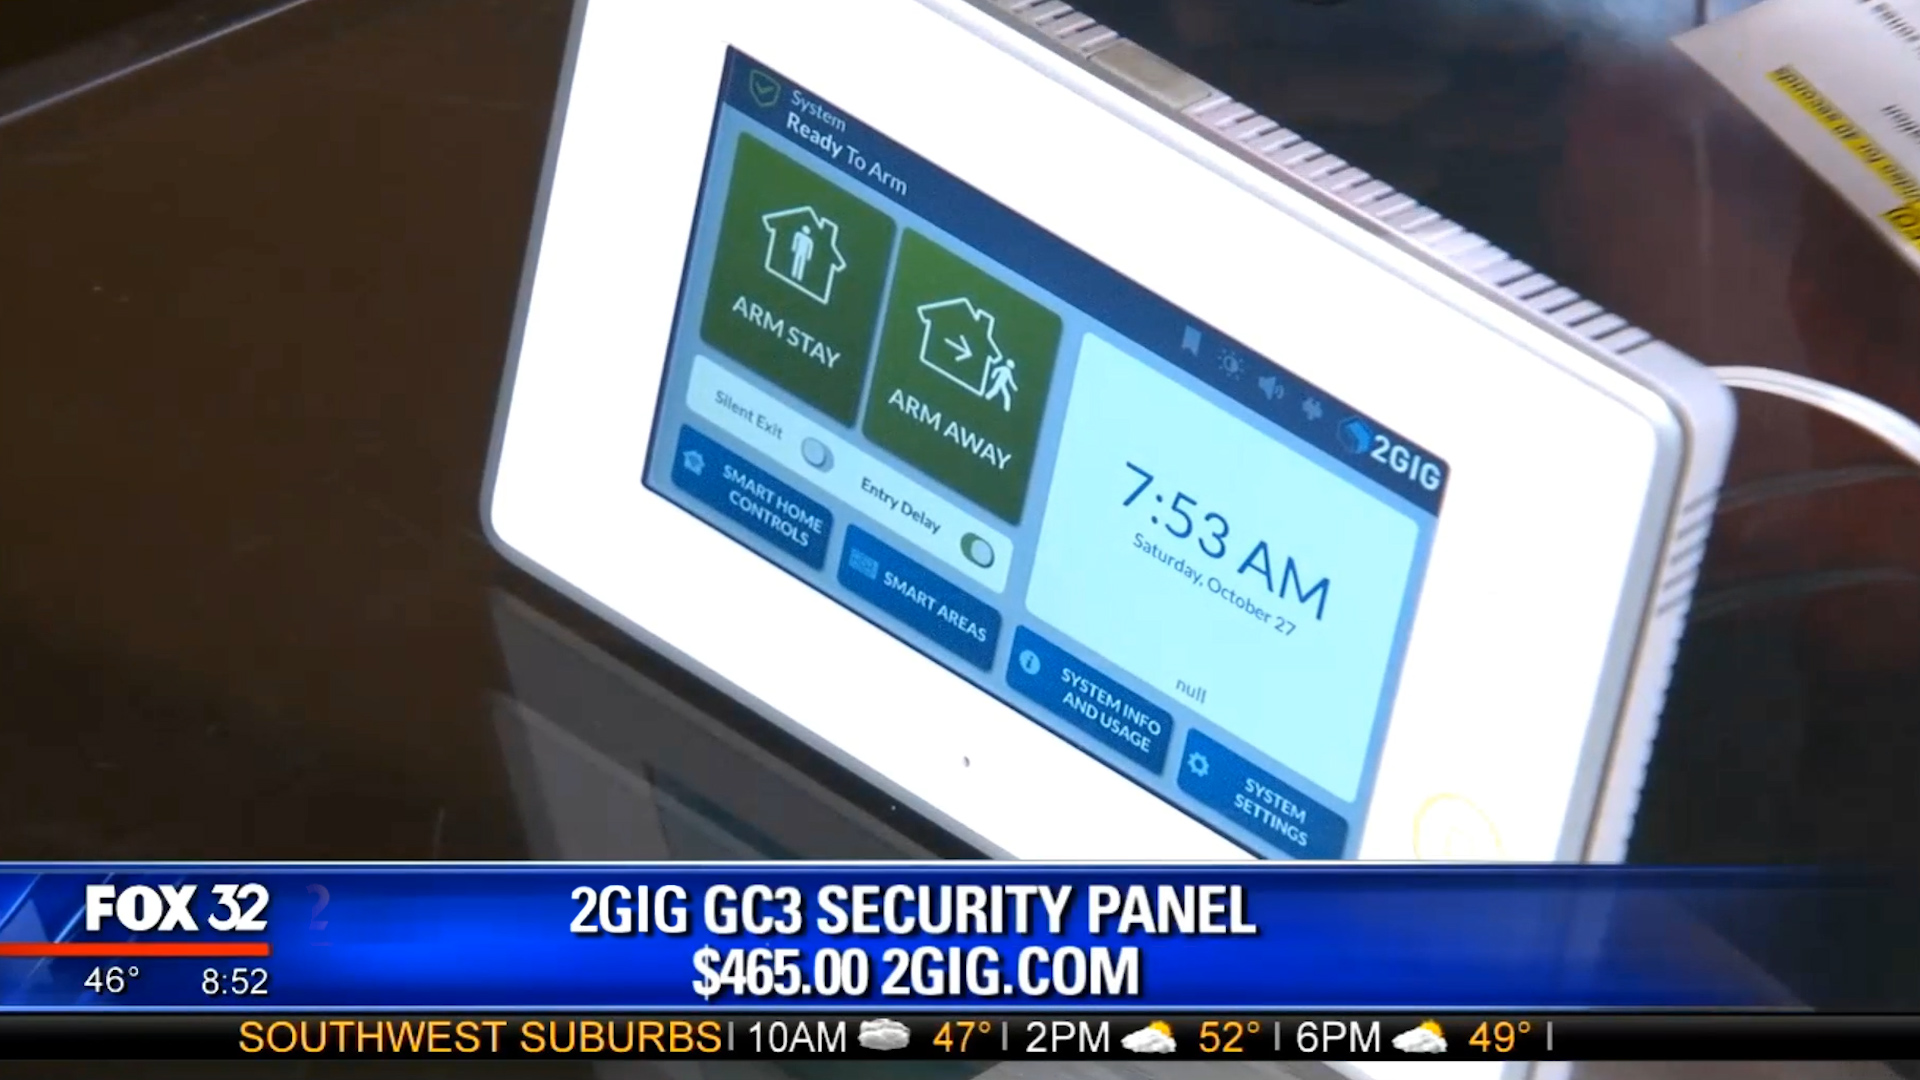 2GIG GC3 SECURITY PANEL - $465.00Shop Now